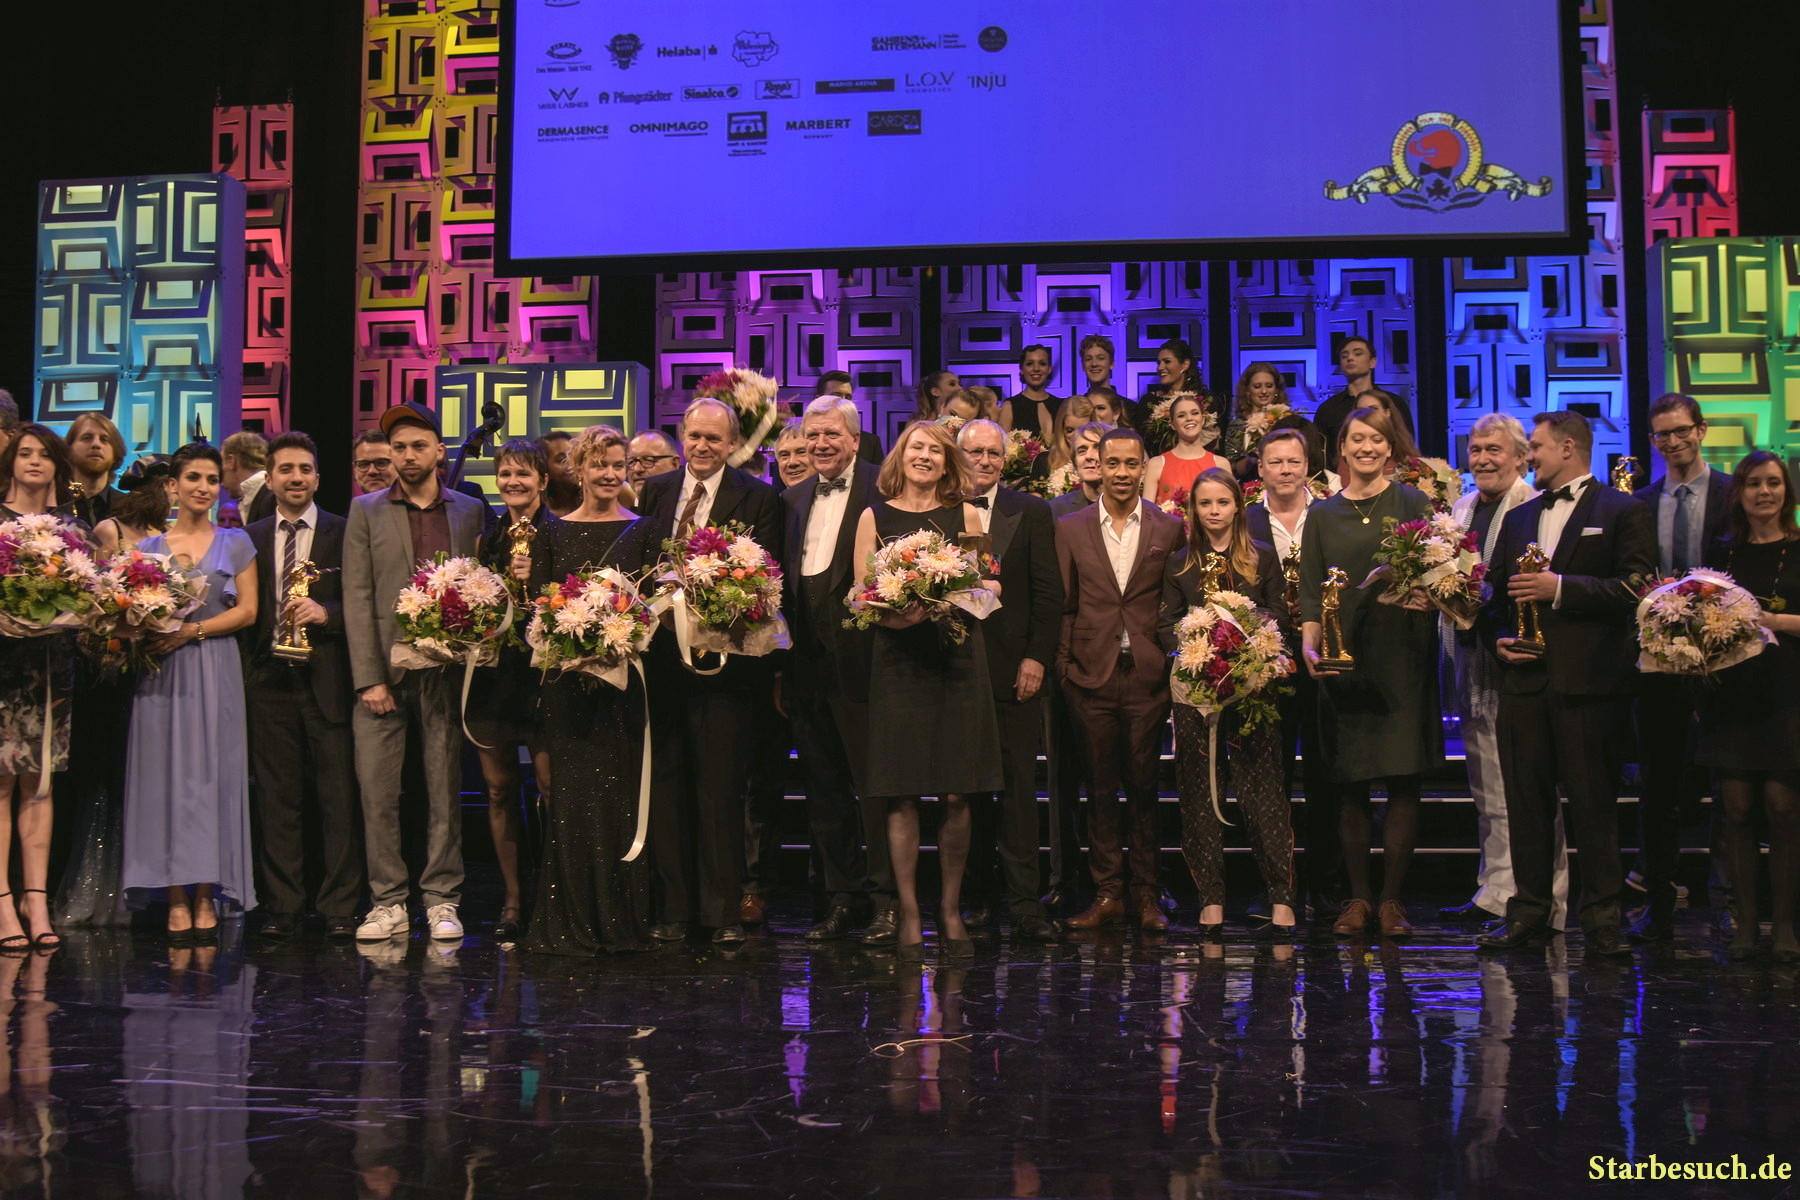 Award winners at the Hessischer Film- und Kinopreis 2017, Alte Oper Frankfurt/Main, Germany